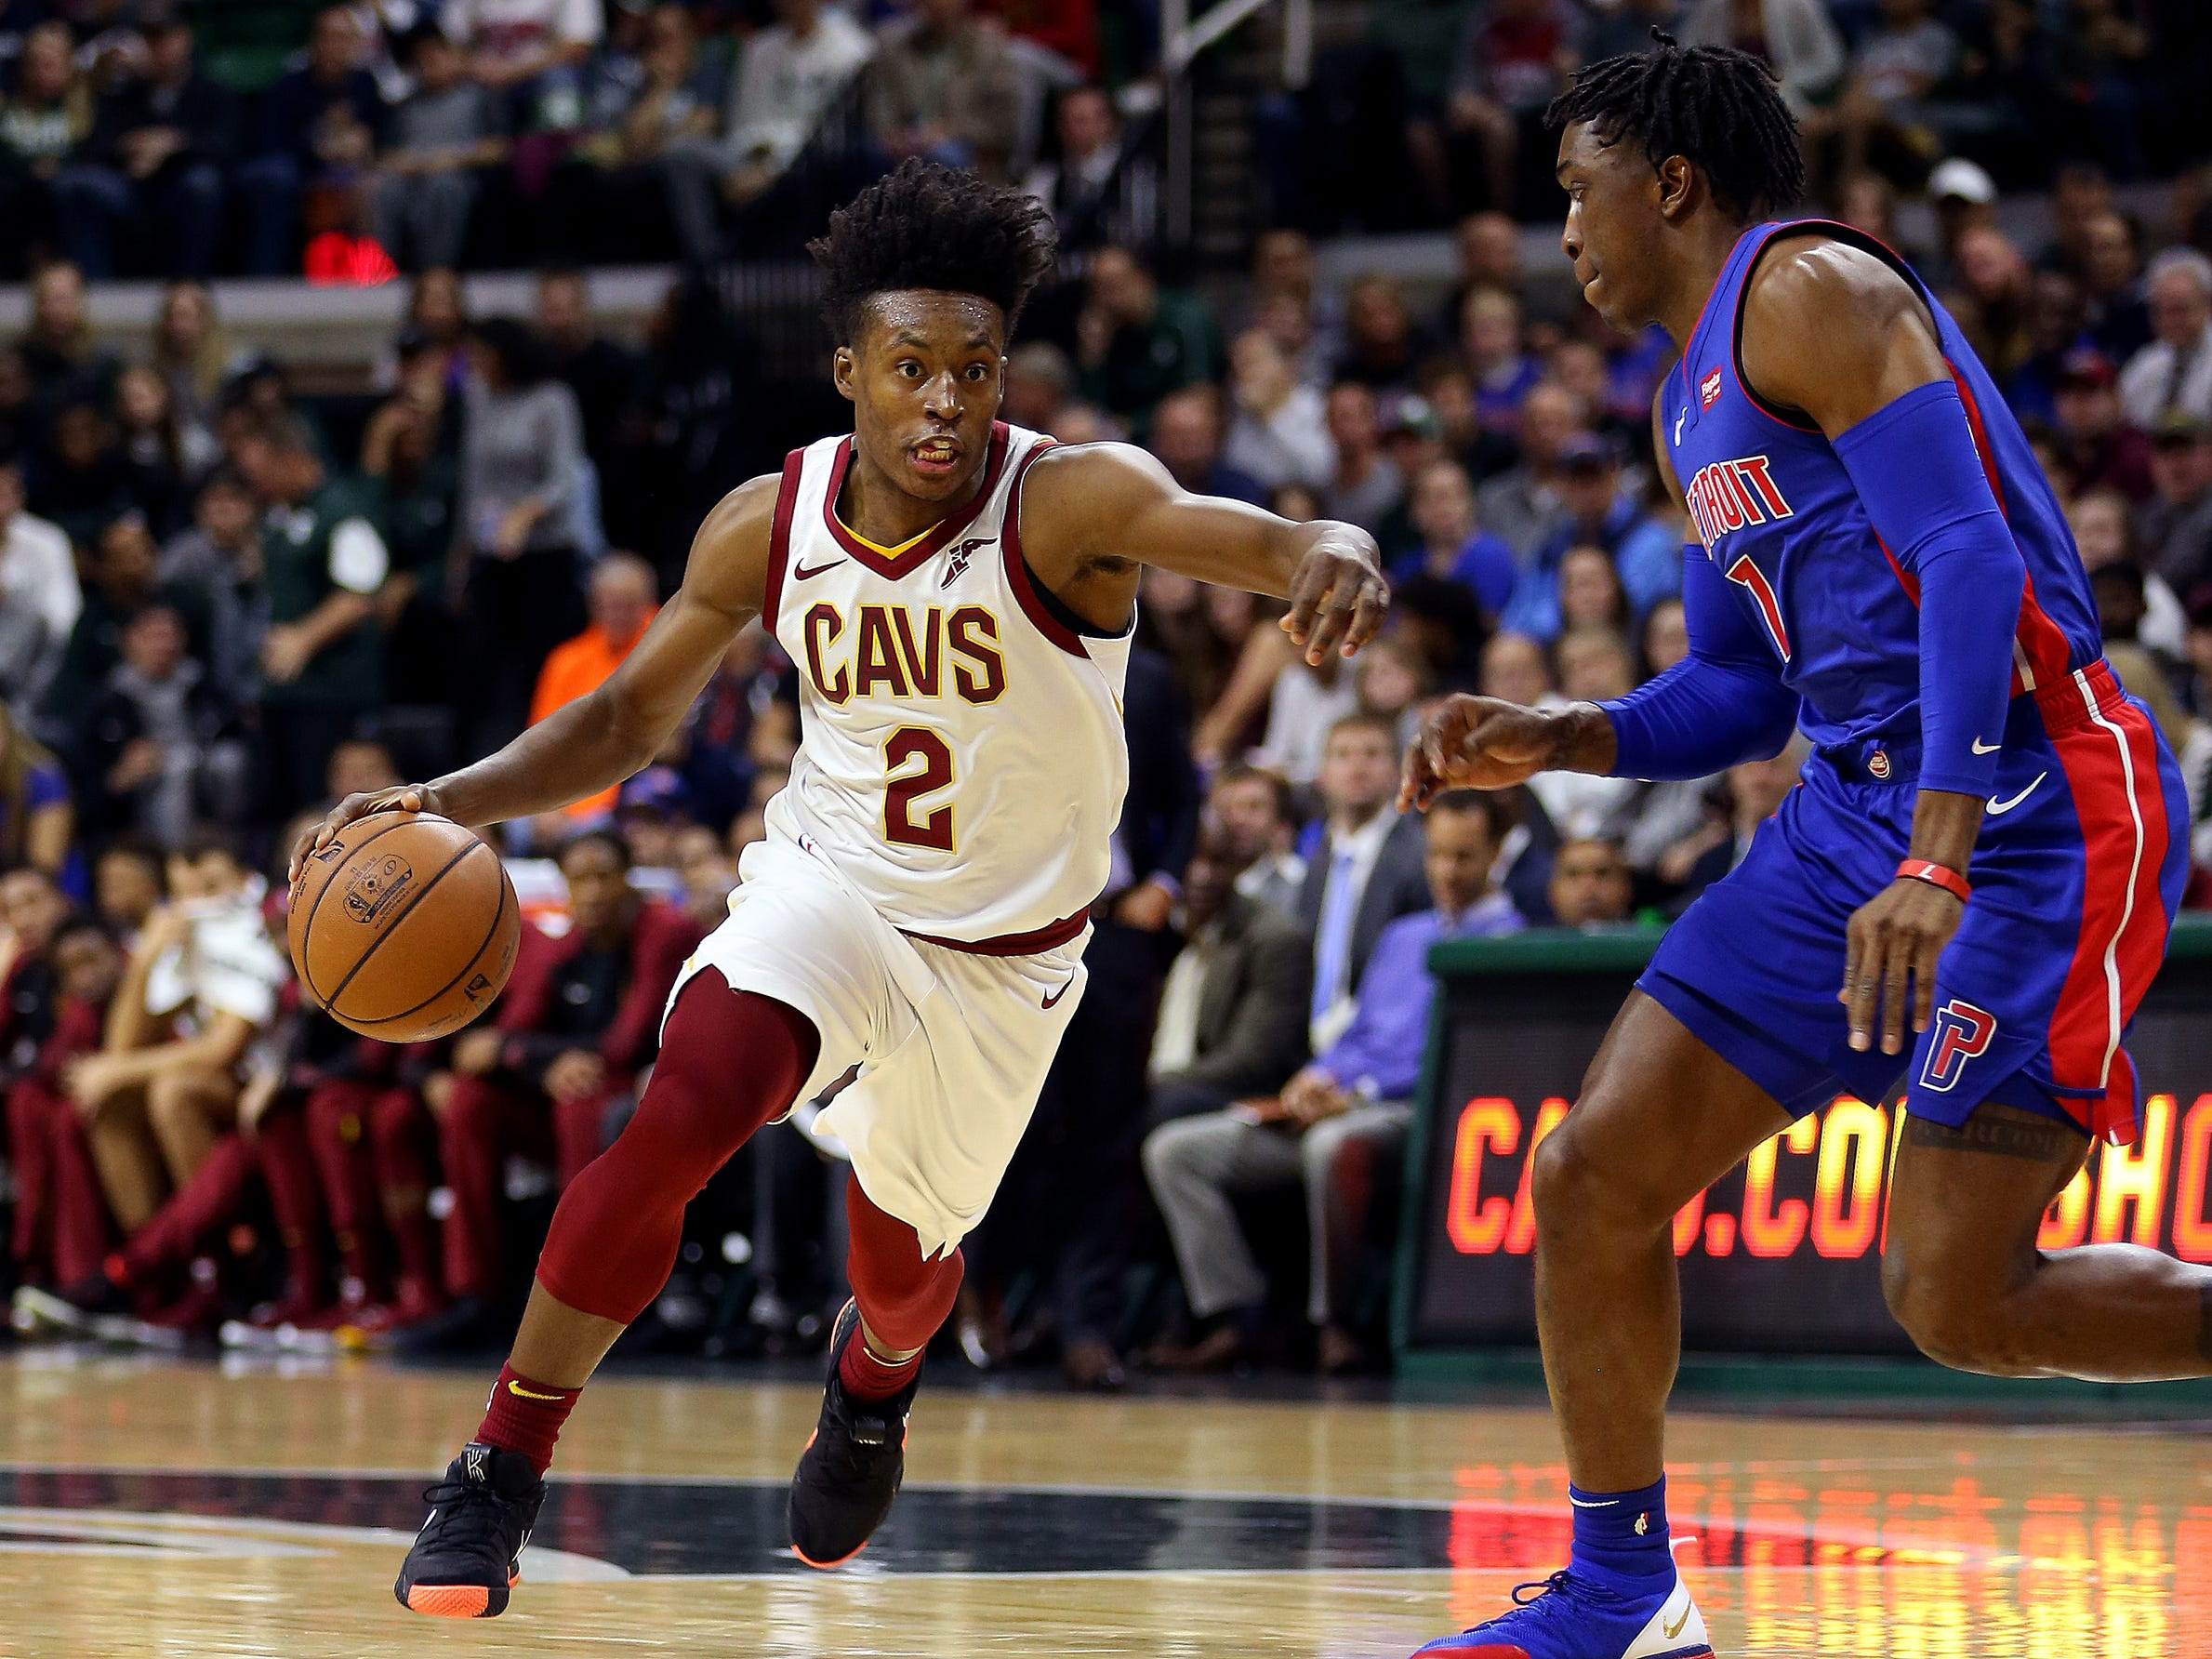 Detroit Pistons vs. Cleveland Cavaliers: What to watch for, game info